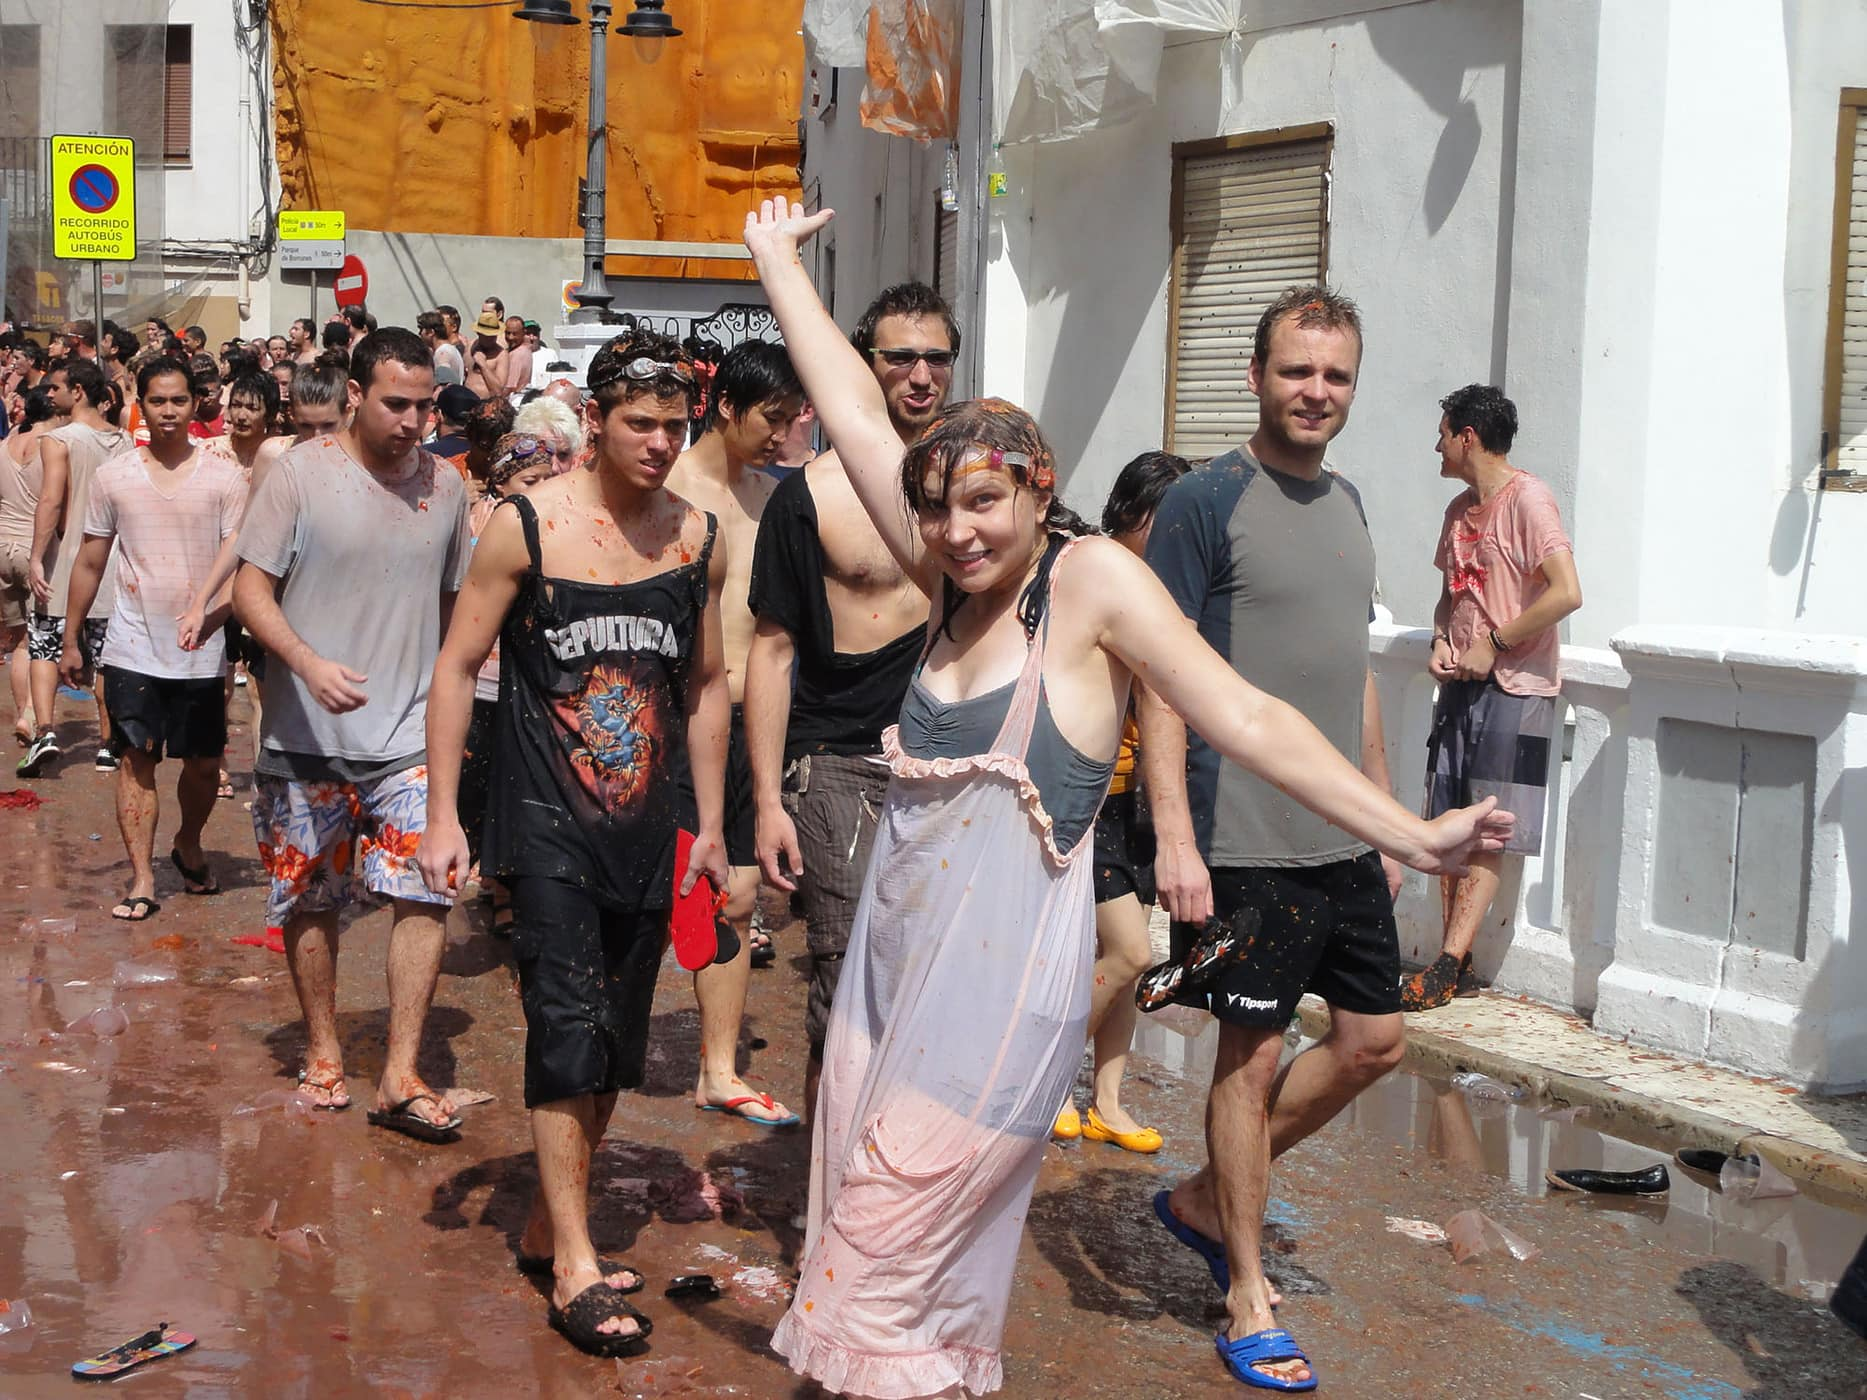 I survived La Tomatina!